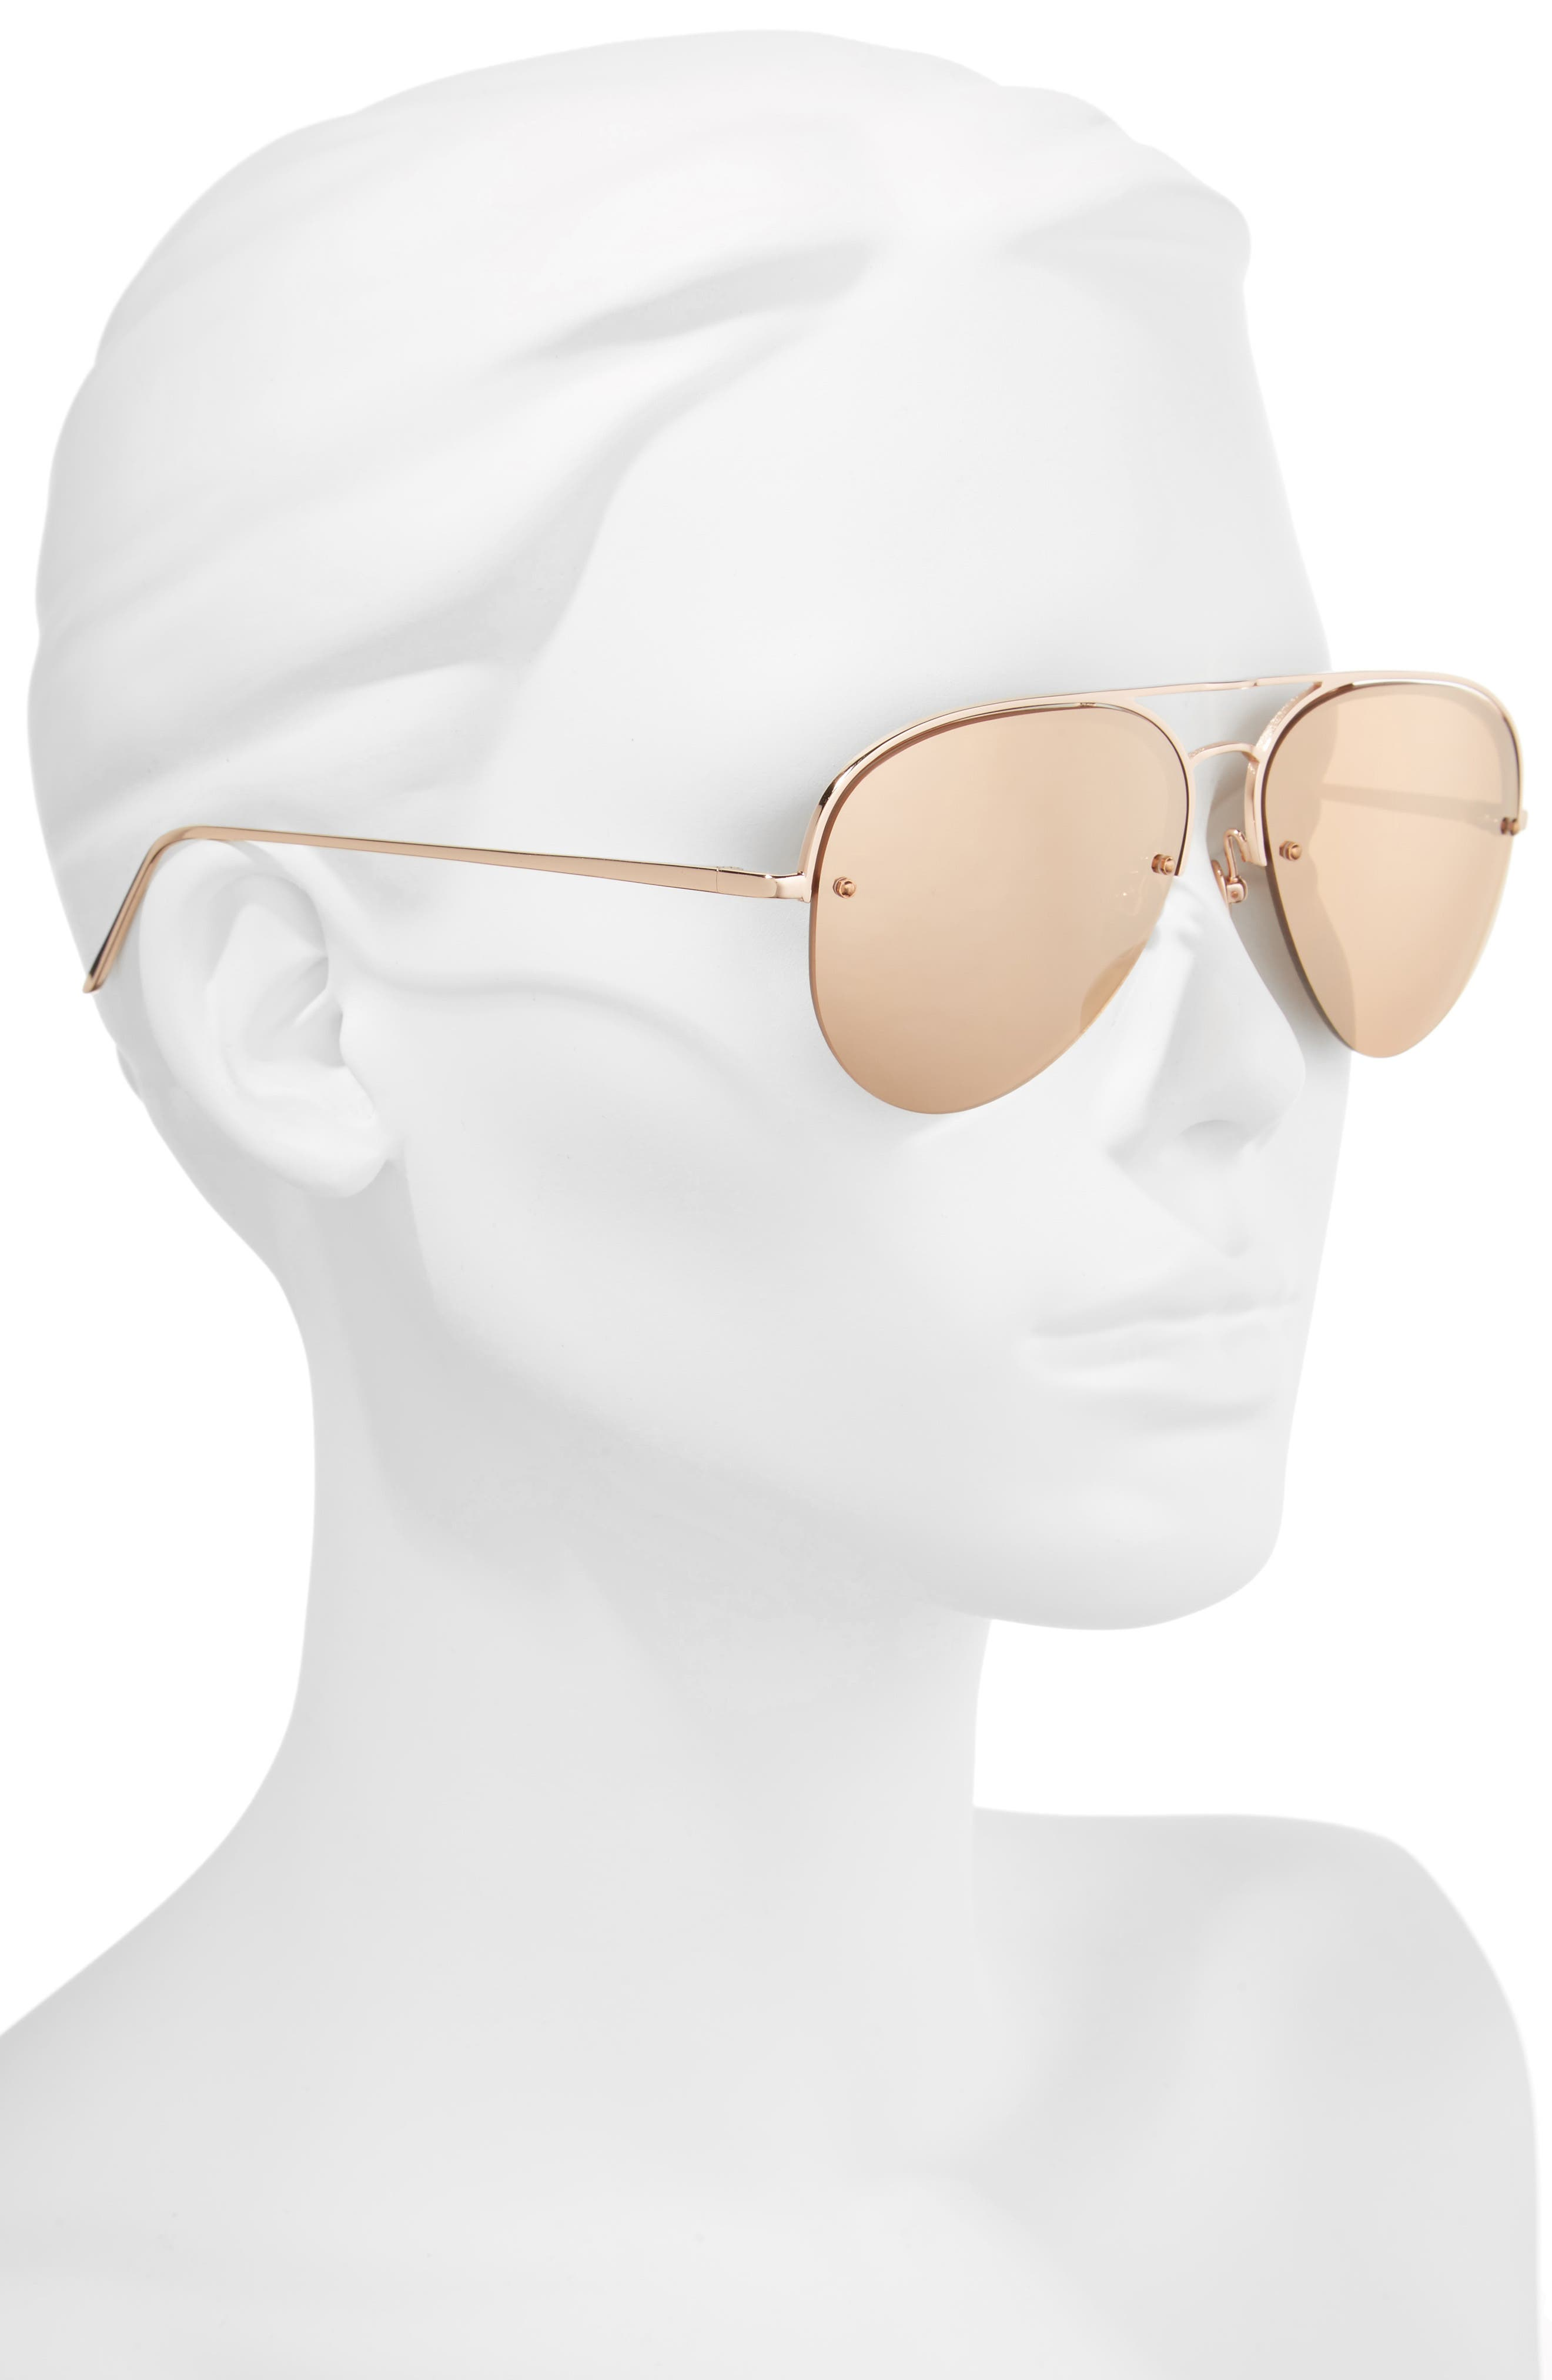 60mm Mirrored 18 Karat Gold Aviator Sunglasses,                             Alternate thumbnail 2, color,                             ROSE GOLD